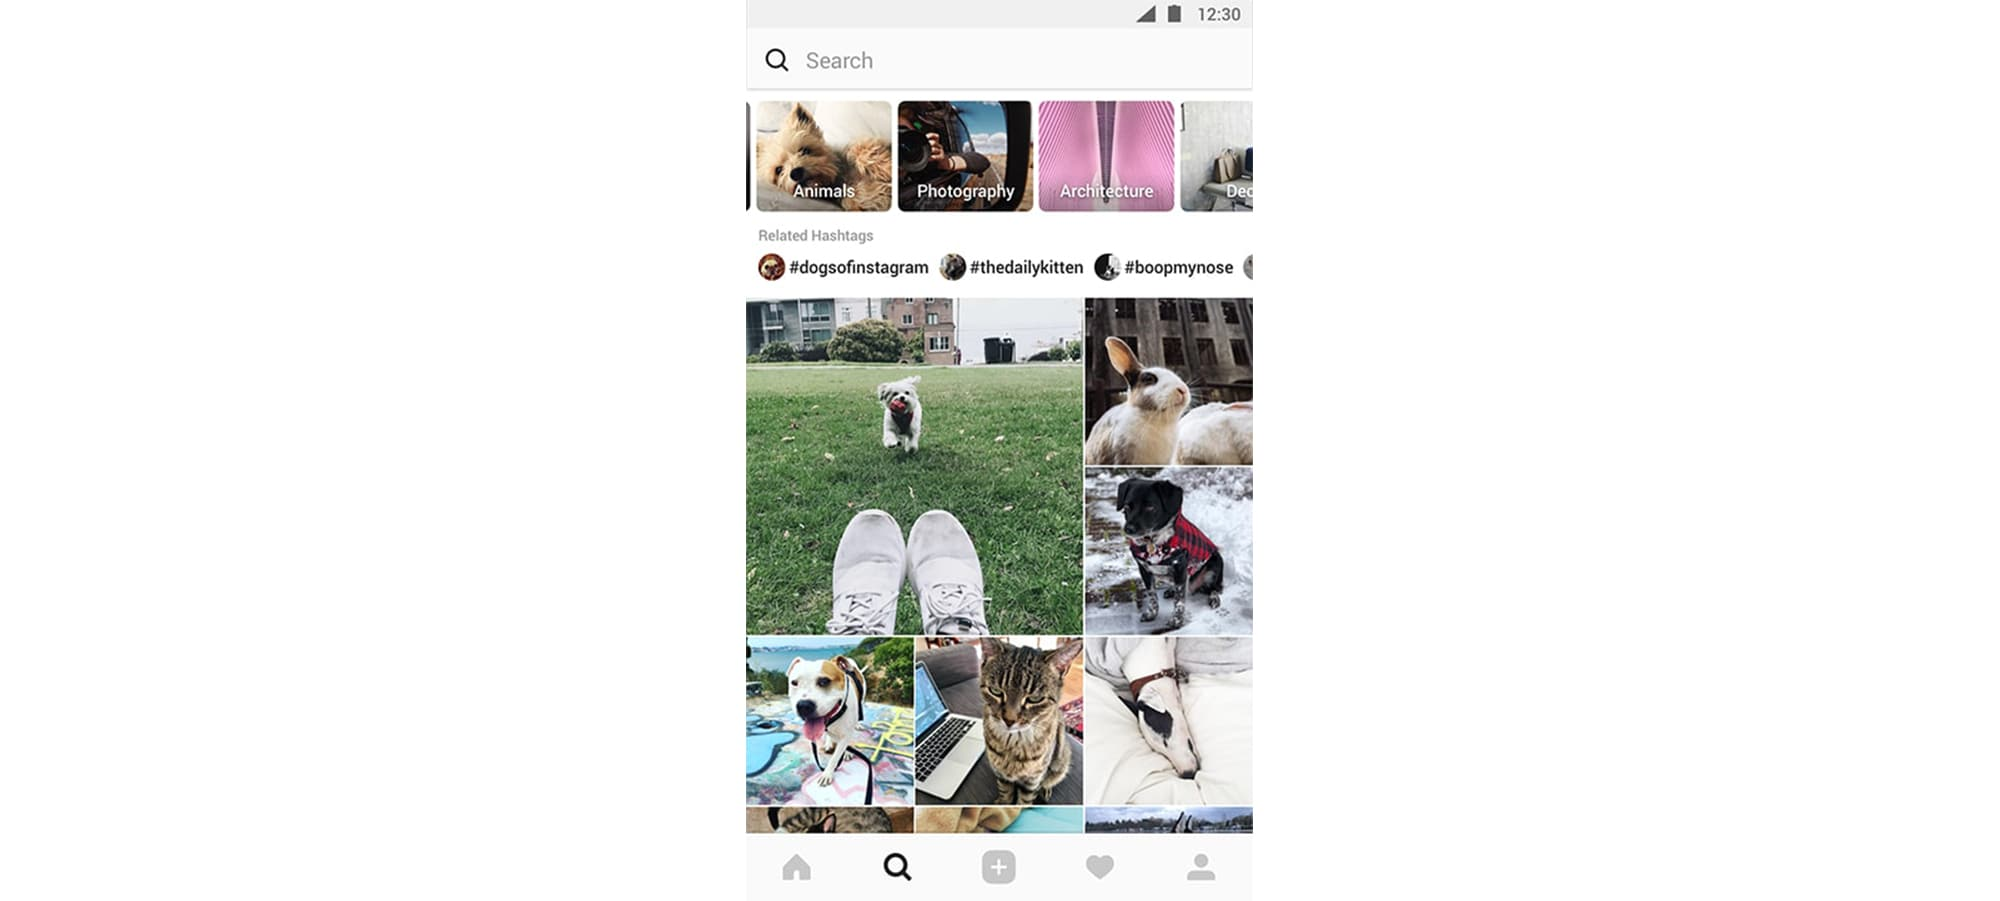 Instagram - Explore and Search Page